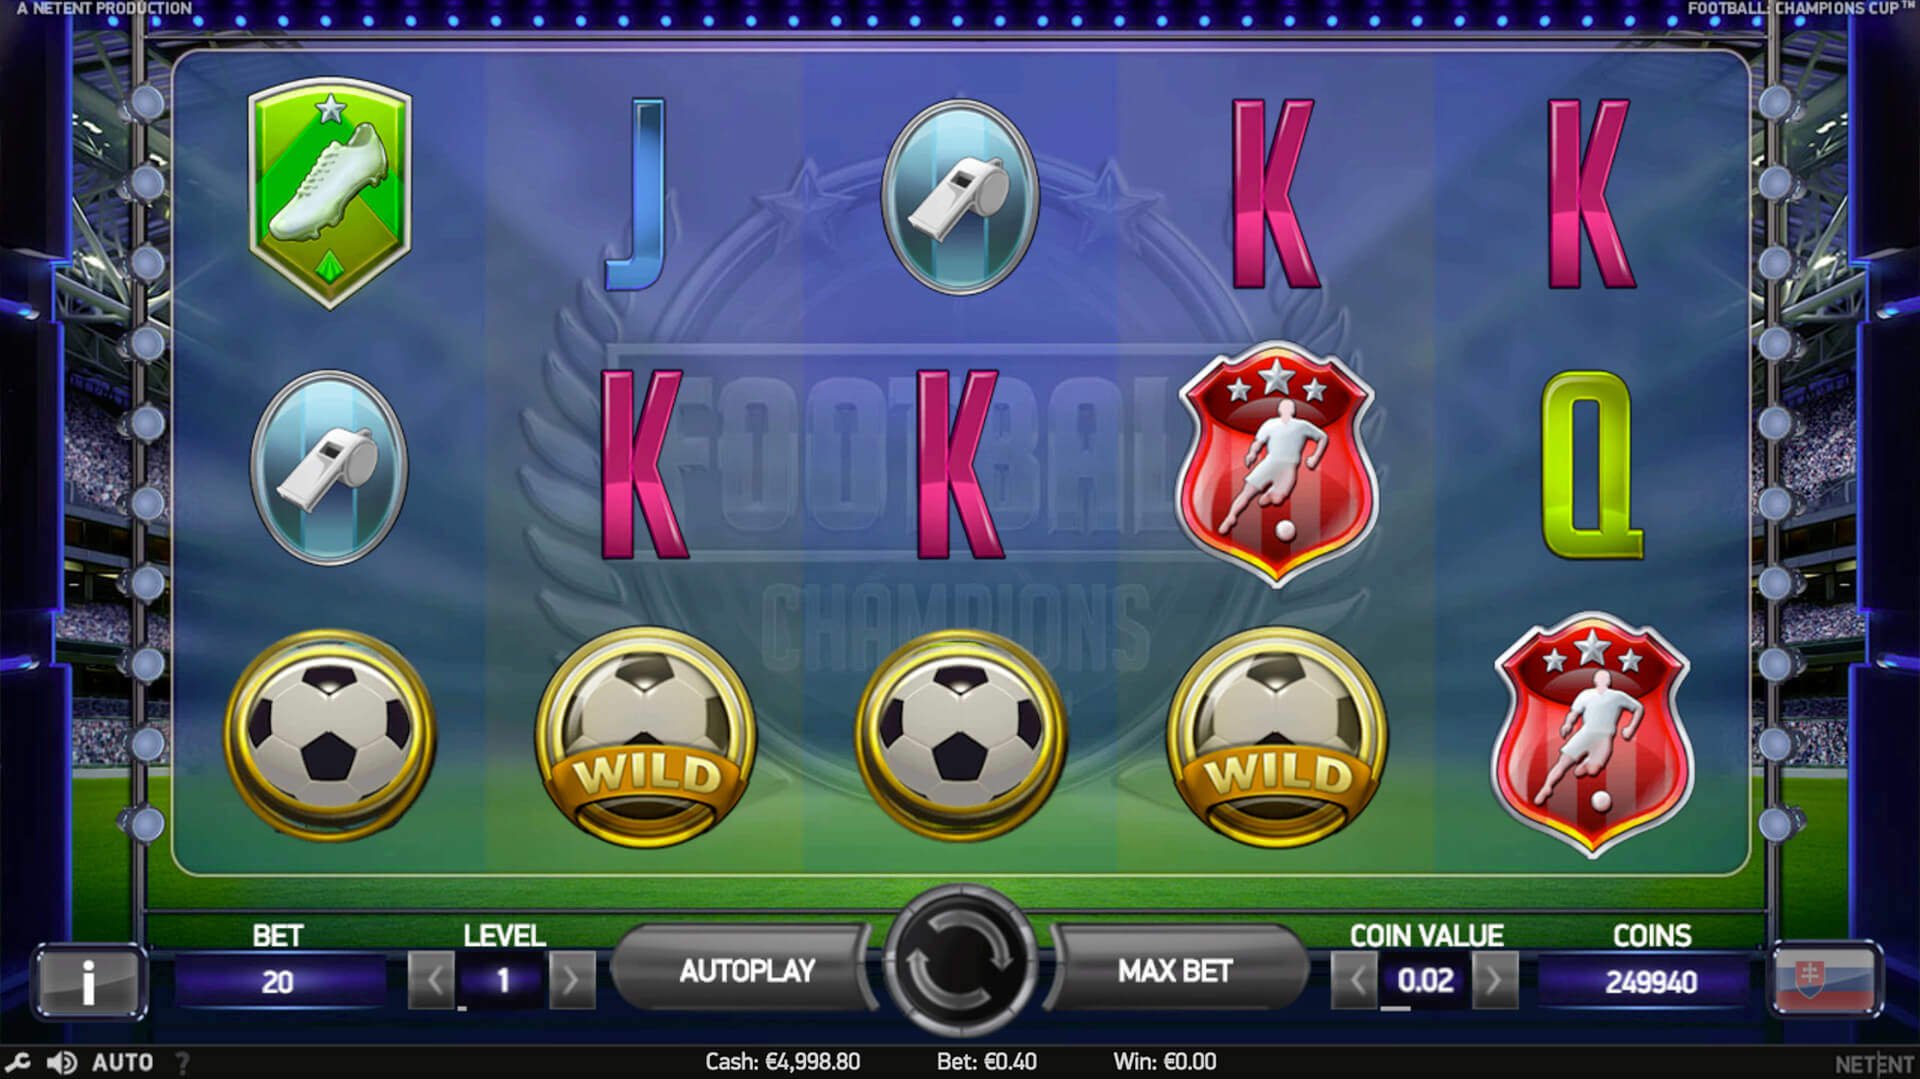 casino royale online movie free champions cup football